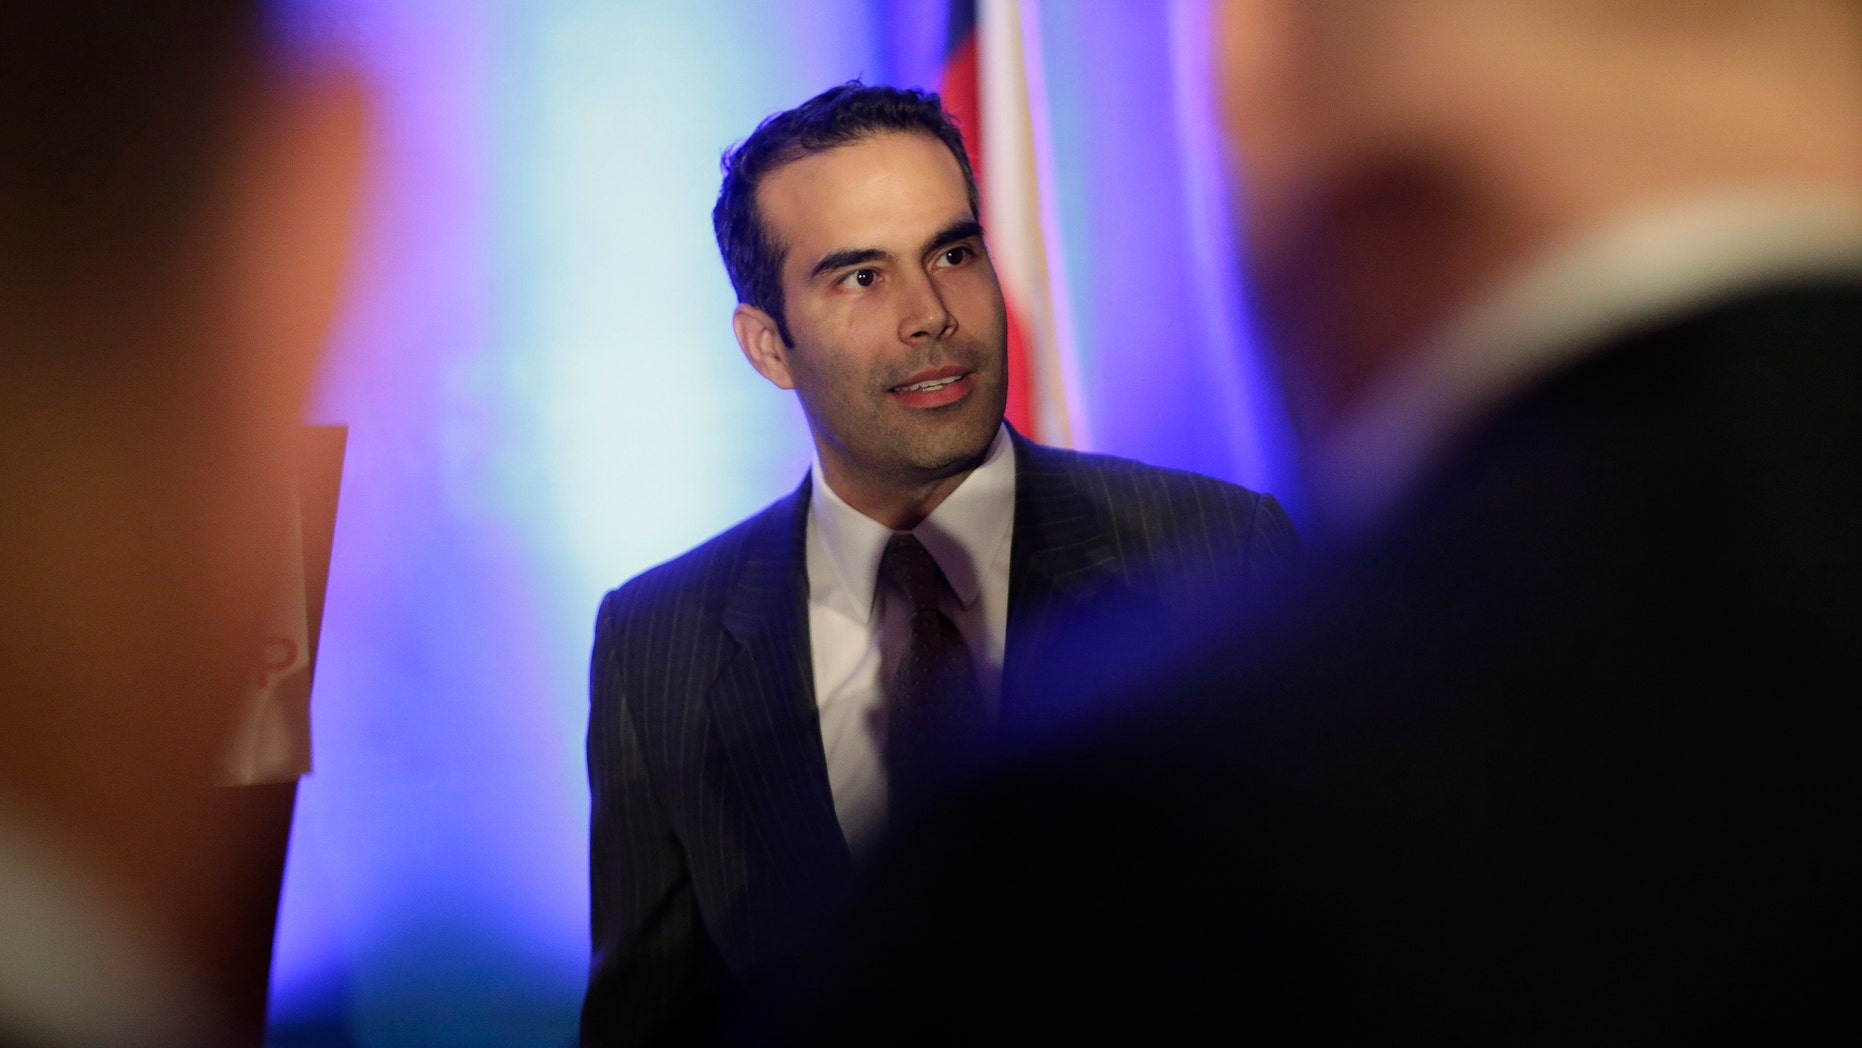 FILE - In this Feb. 26, 2013 file photo, George P. Bush, left, talks to businessmen prior to making the opening statements at the Texas Business Leadership Council in Austin, Texas. Ending months of speculation about what post the grandson of one former U.S. president and nephew of another planned to seek, spokesman Trey Newton told The Associated Press that Bush filed the official paperwork Tuesday, March 12, 2013 to run for land commissioner, a popular stepping stone to higher office.(AP Photo/Eric Gay, File)